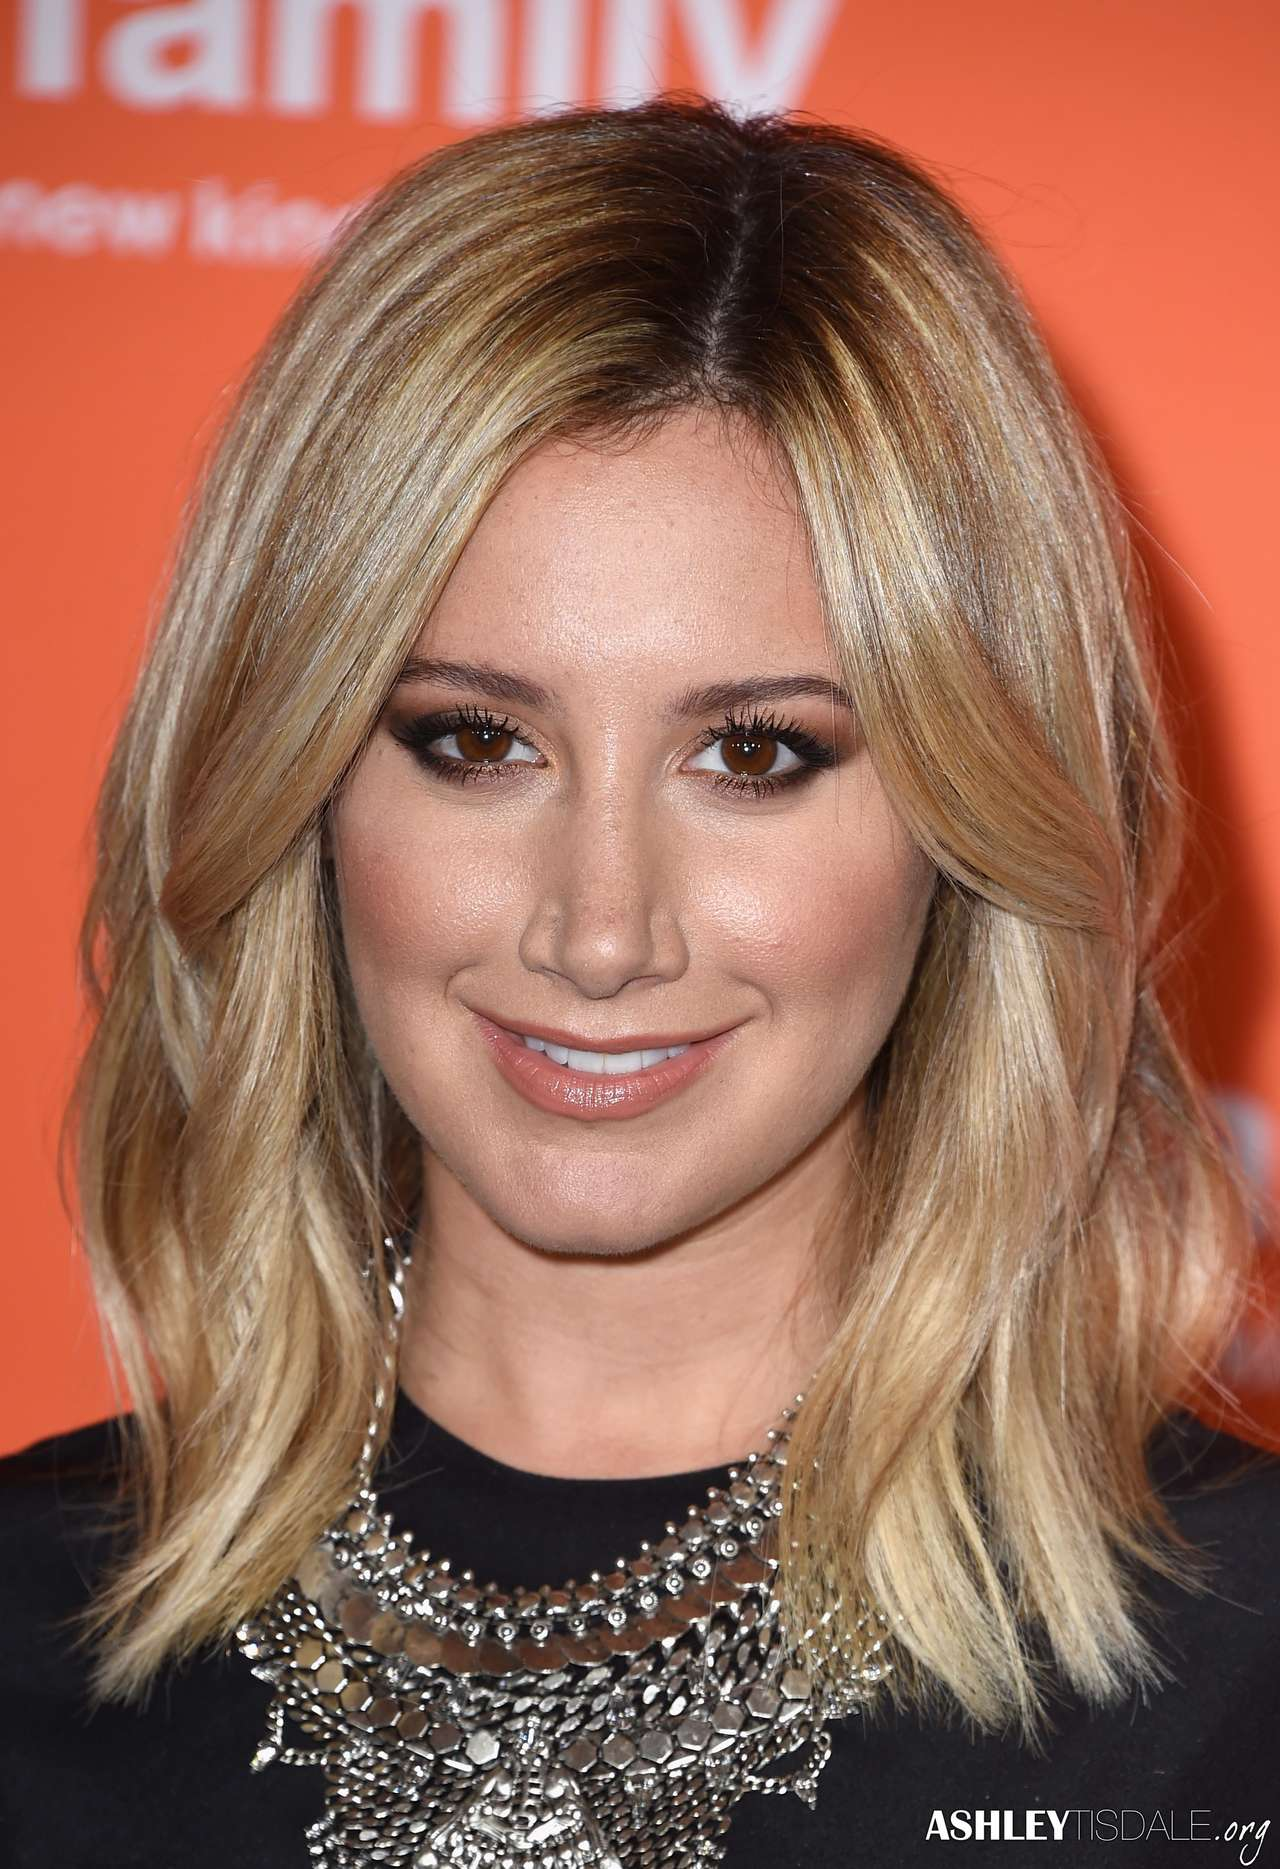 Ashley Tisdale 2014 : Ashley Tisdale at 2014 Disney ABC TCA Summer Press Tour in Beverly Hills -07